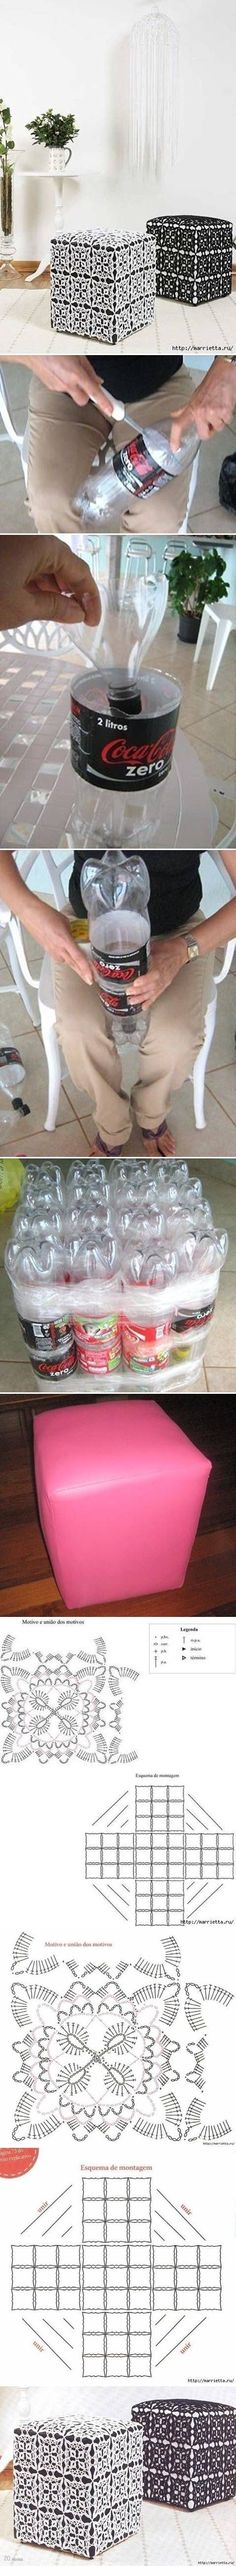 Circo DIY Ottoman Out of Plastic Bottles -.Circo DIY Ottoman Out of Plastic Bottles - looks like it takes about I probably wouldn Plastic Bottle Crafts, Plastic Bottles, Soda Bottles, Water Bottles, Diy Projects To Try, Craft Projects, Craft Ideas, Diy Ideas, Home Crafts